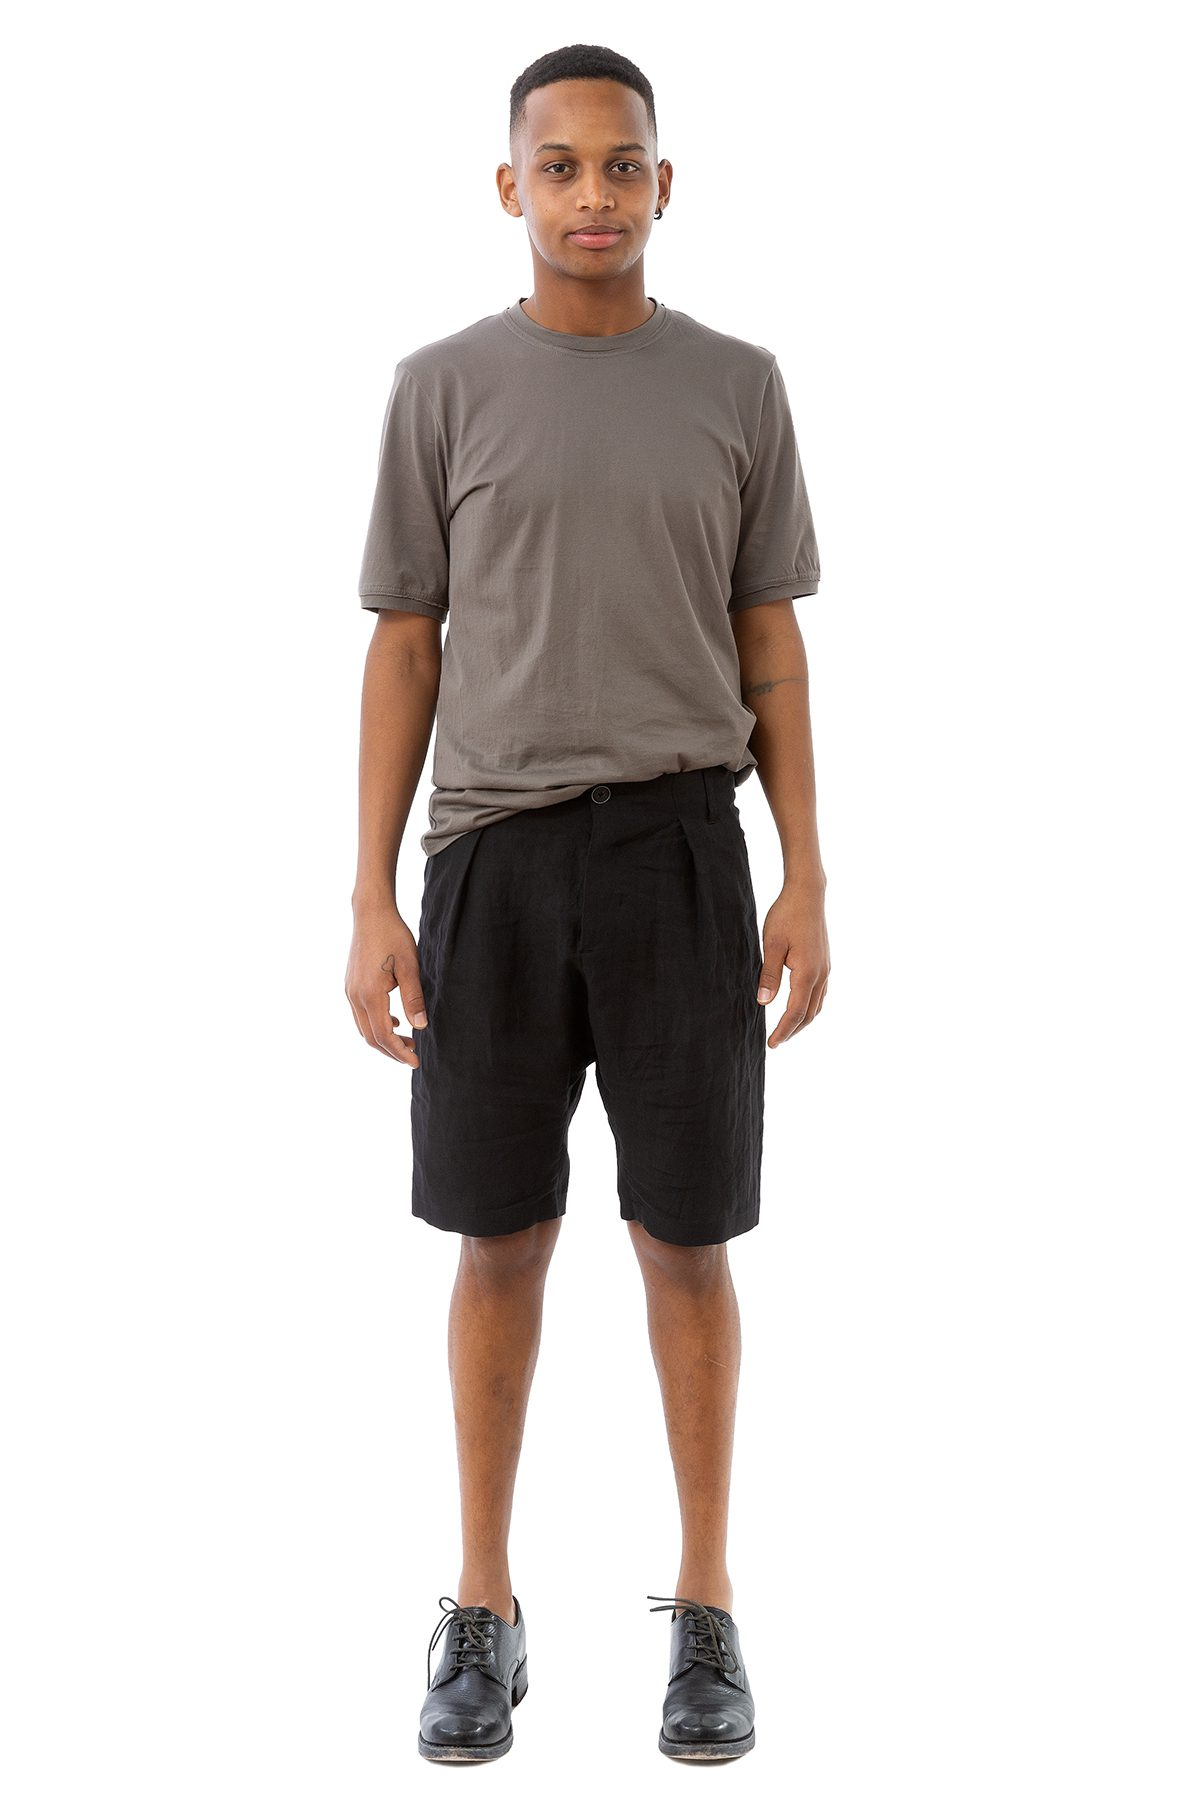 hannibal ss20 shorts daiki ink black schwarz 01